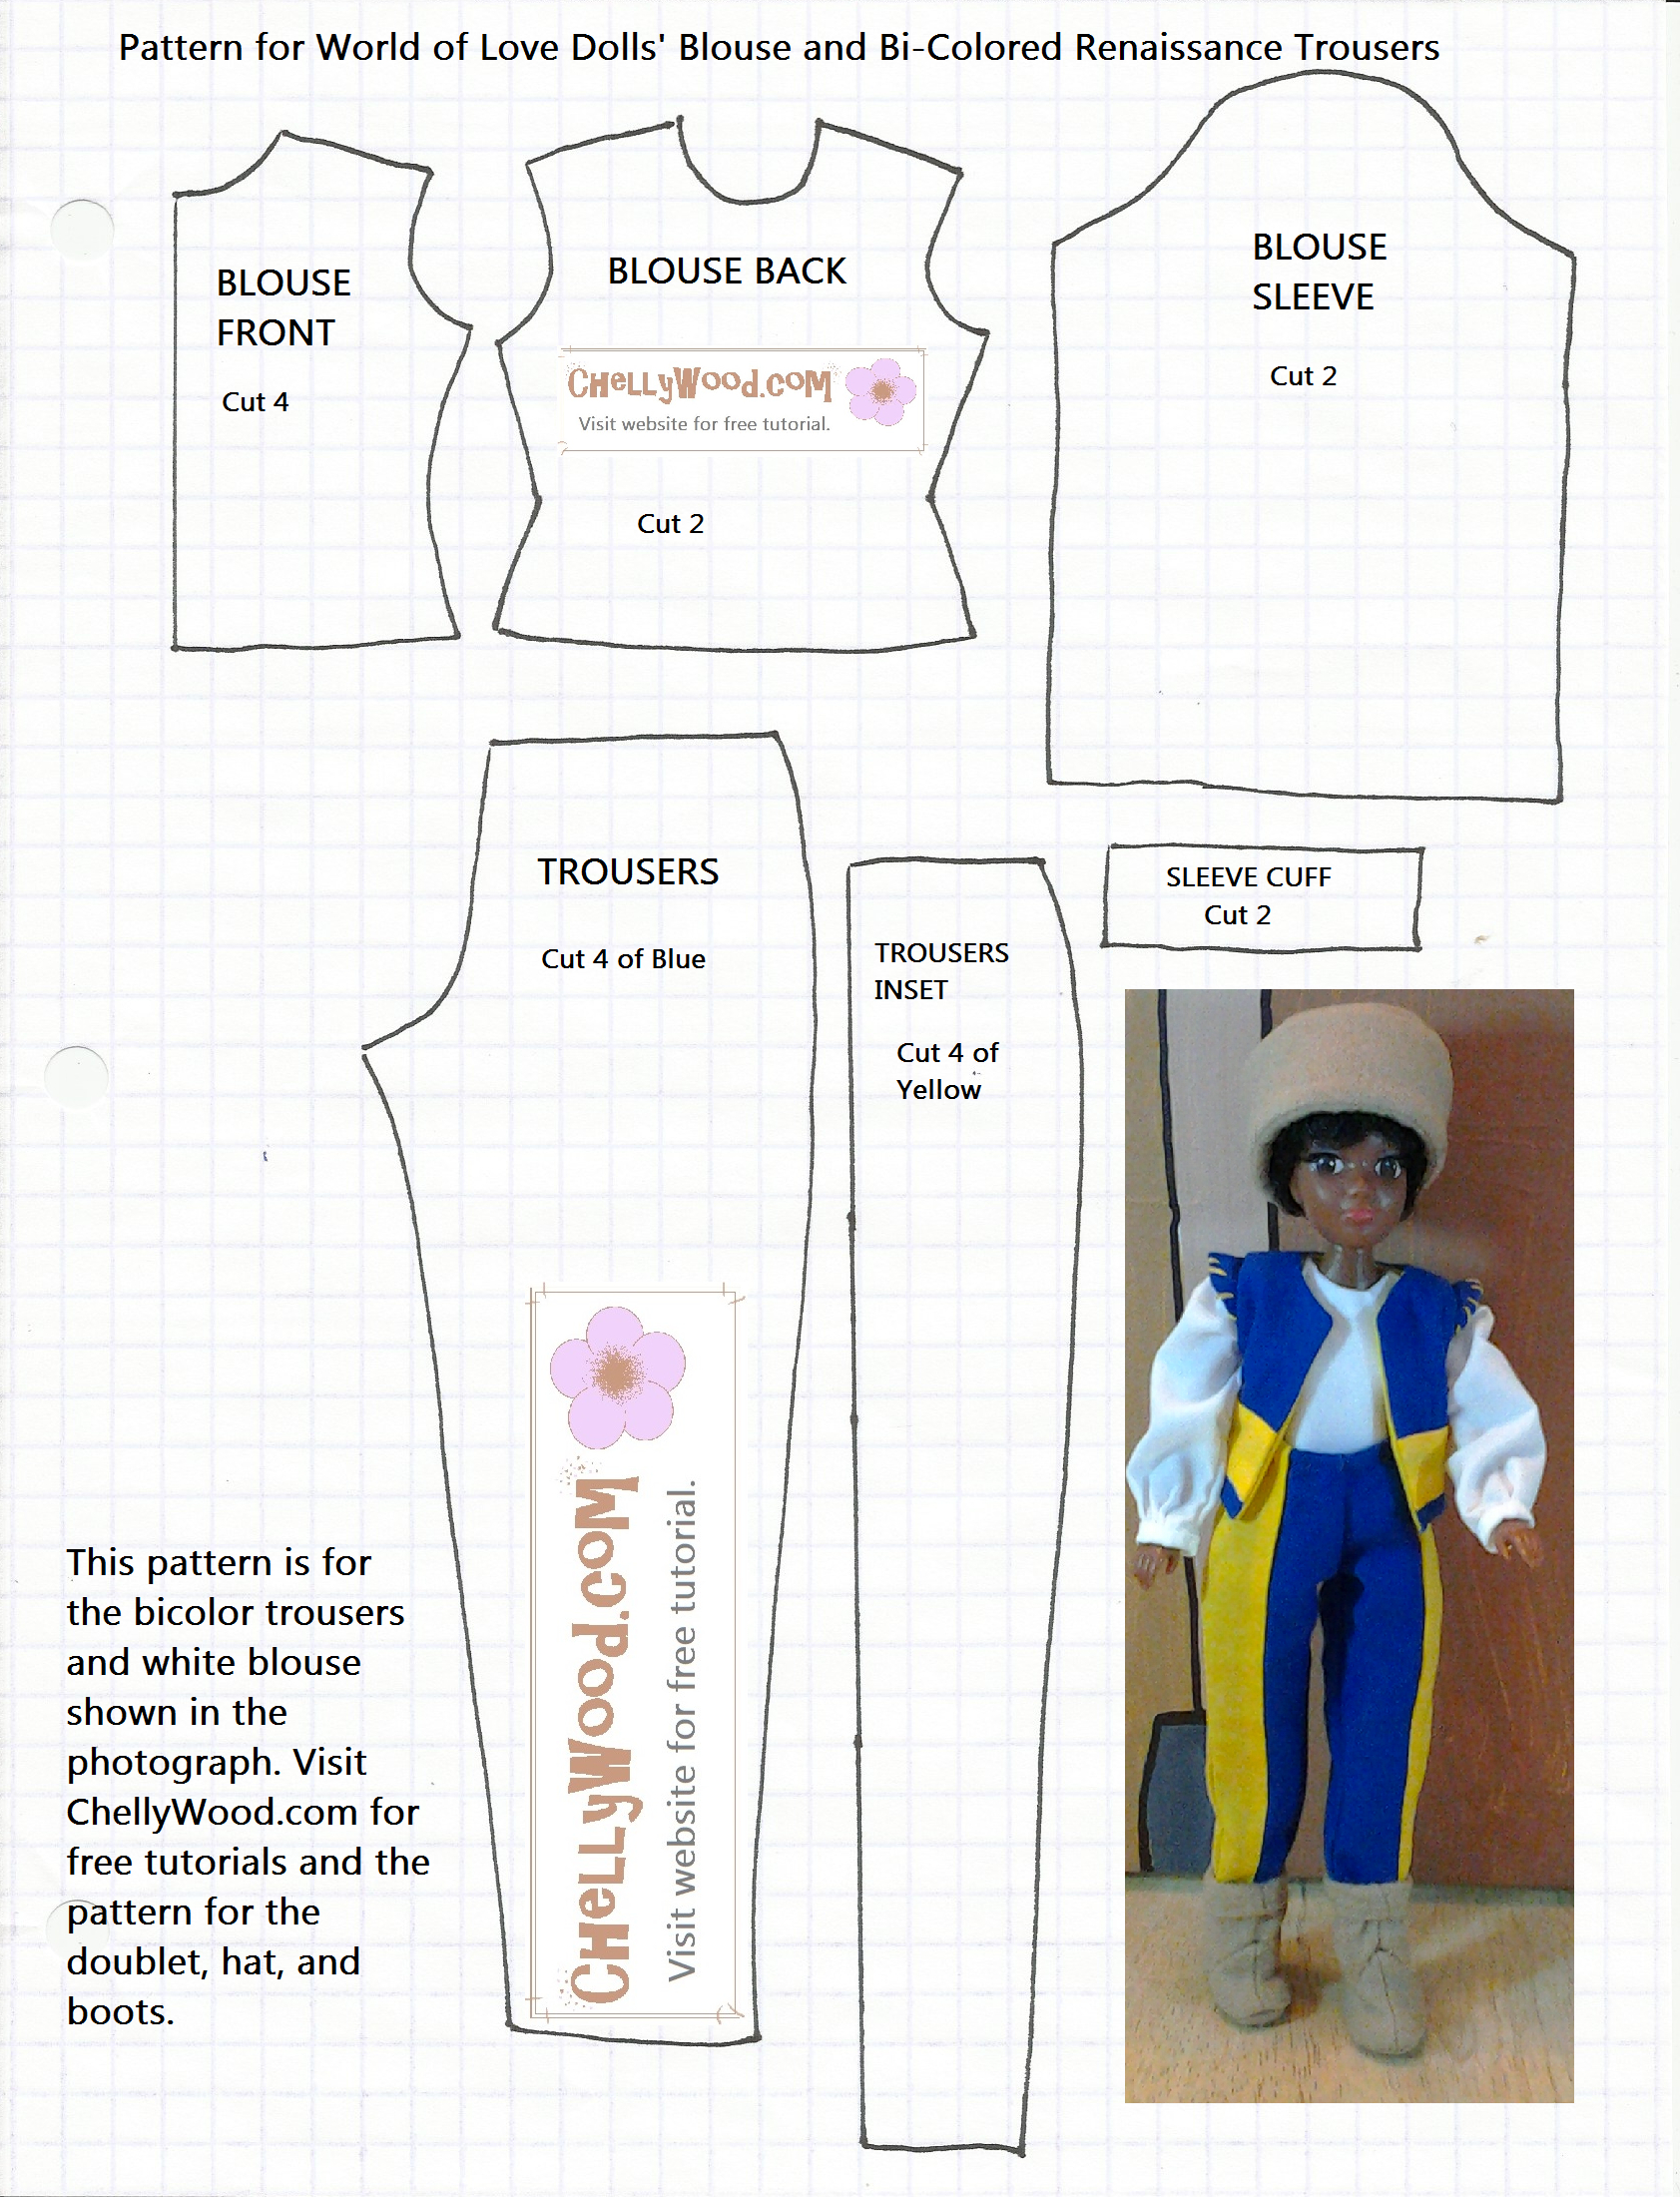 Free Printable Barbie Doll Clothes Patterns – Free, Printable Doll - Easy Barbie Clothes Patterns Free Printable